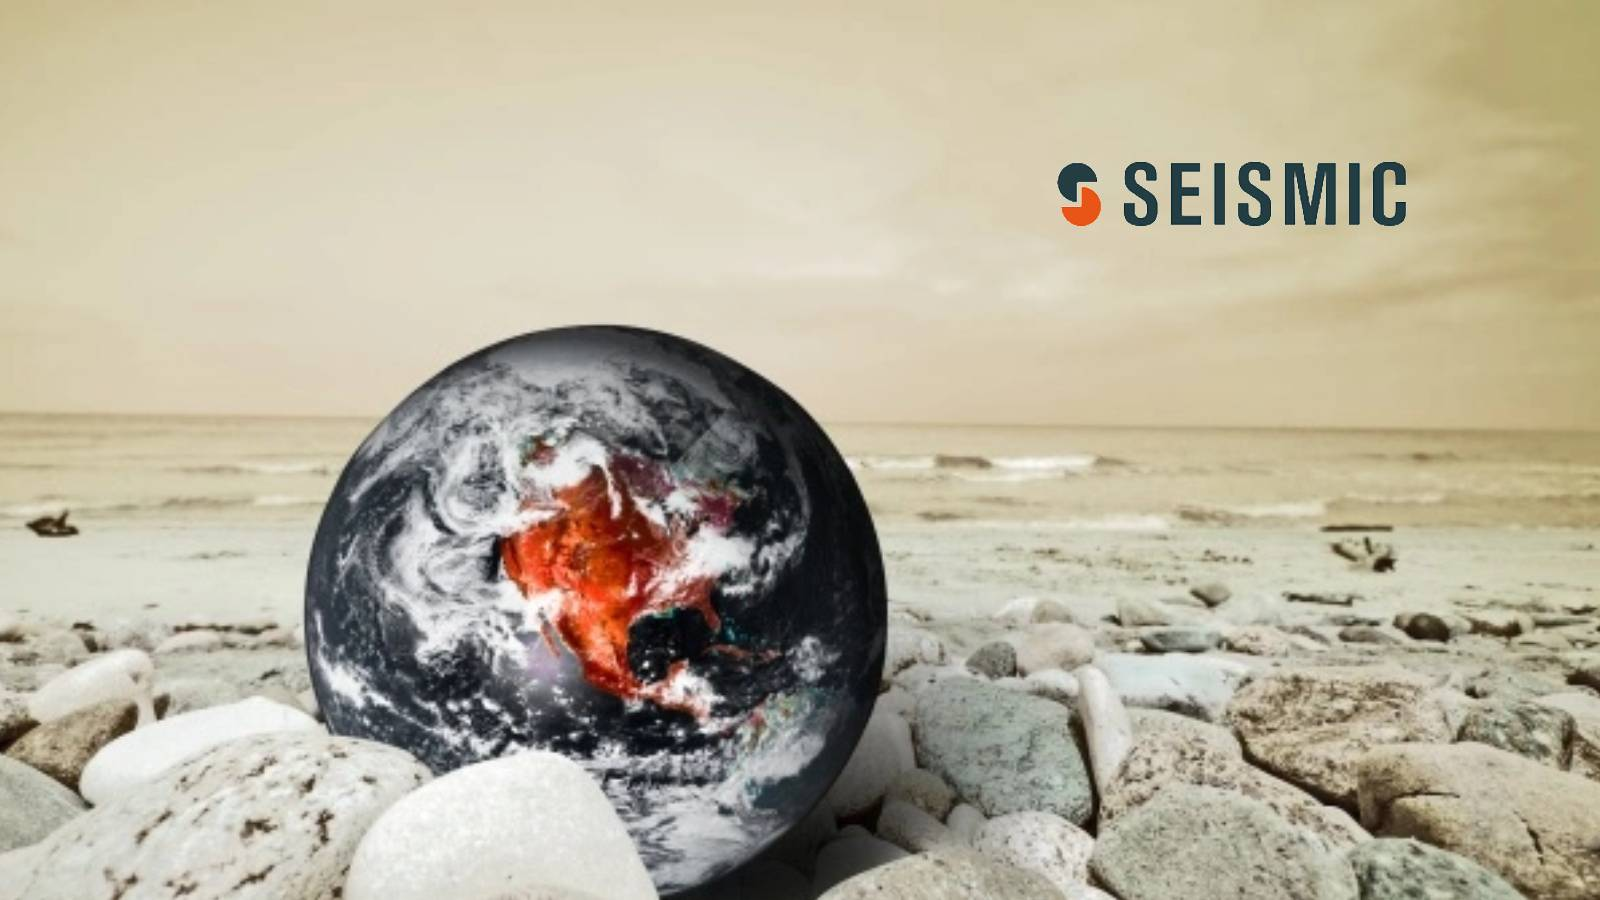 Seismic Acquires Grapevine6 to Enable Digital Sales Engagement Across Multiple Customer-Facing Social Media and Digital Platforms 6